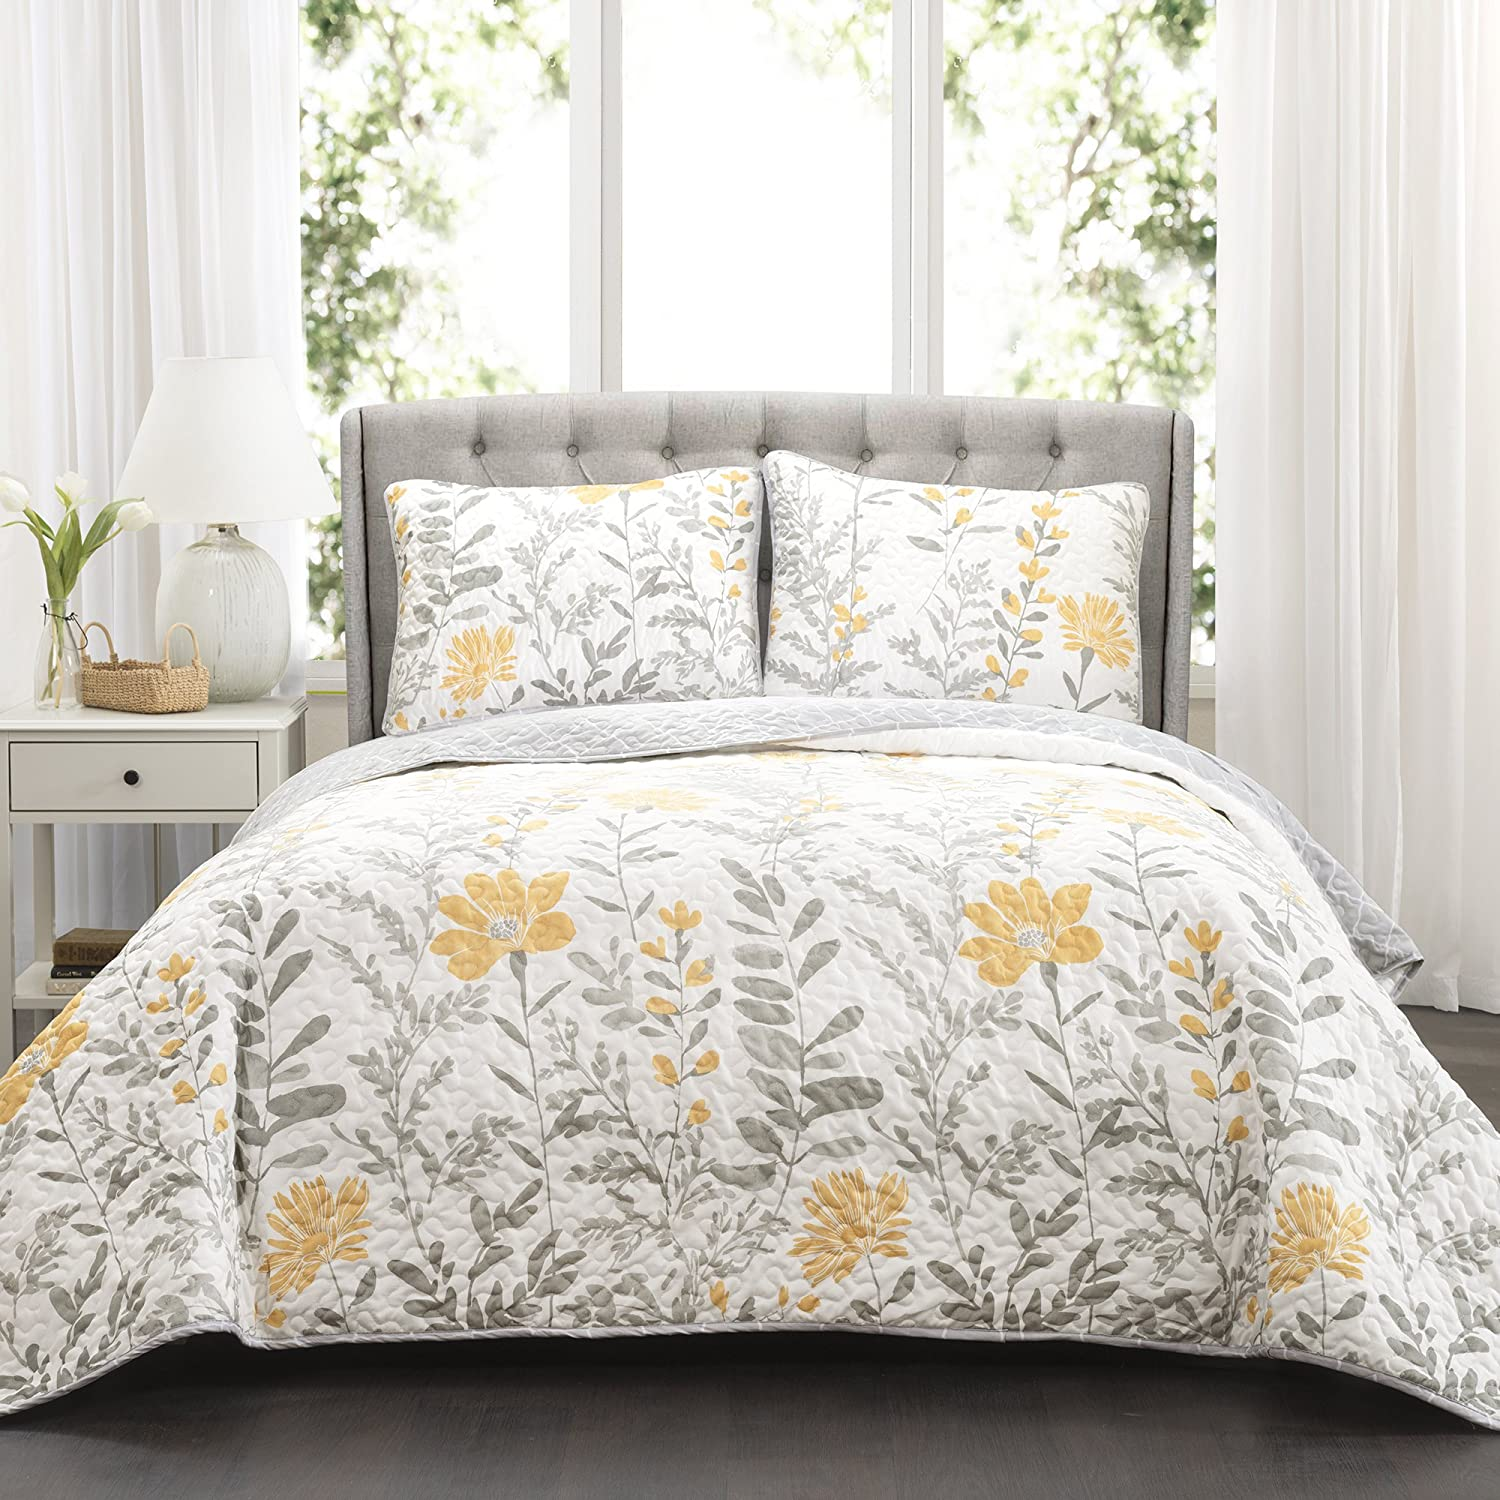 Lush Decor Yellow Aprile Reversible Quilt 3 Piece Floral Leaf Design Bedding Set-King Gray